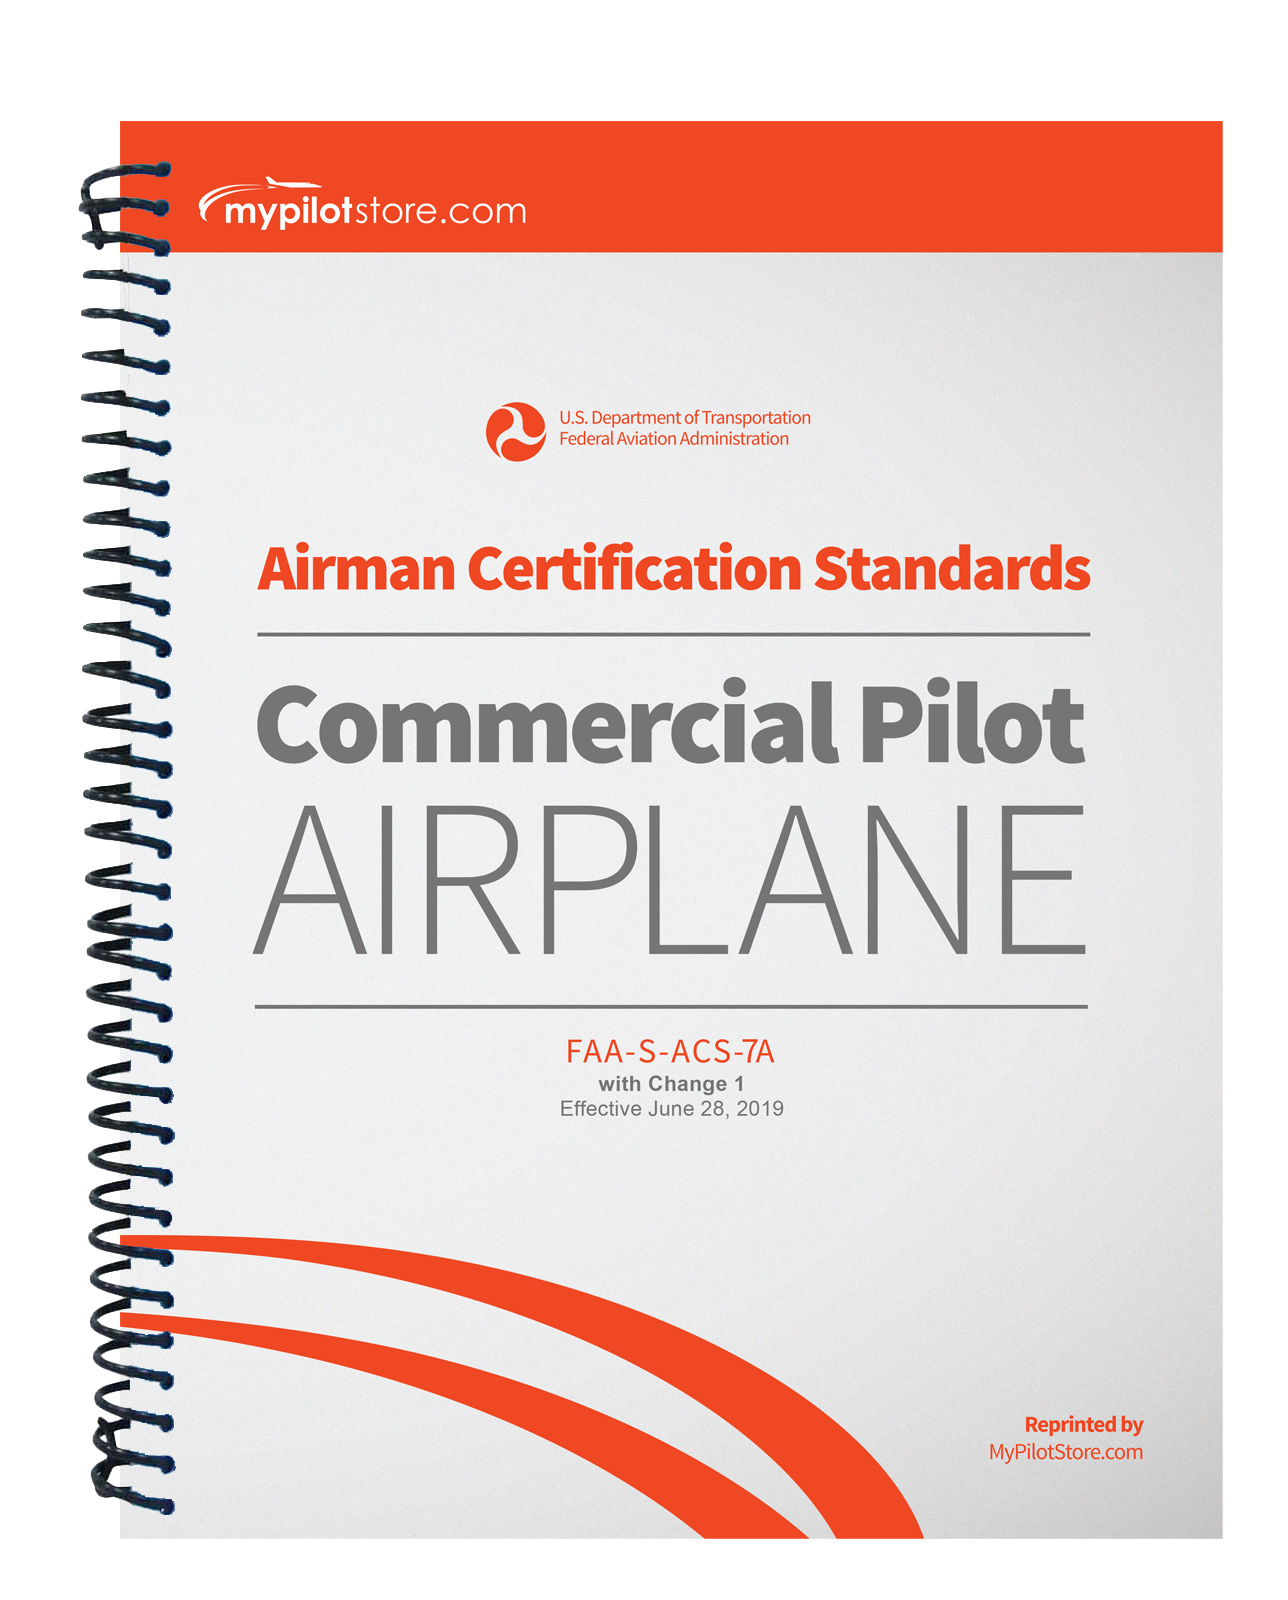 pilot airman certification standards airplane commercial mypilotstore